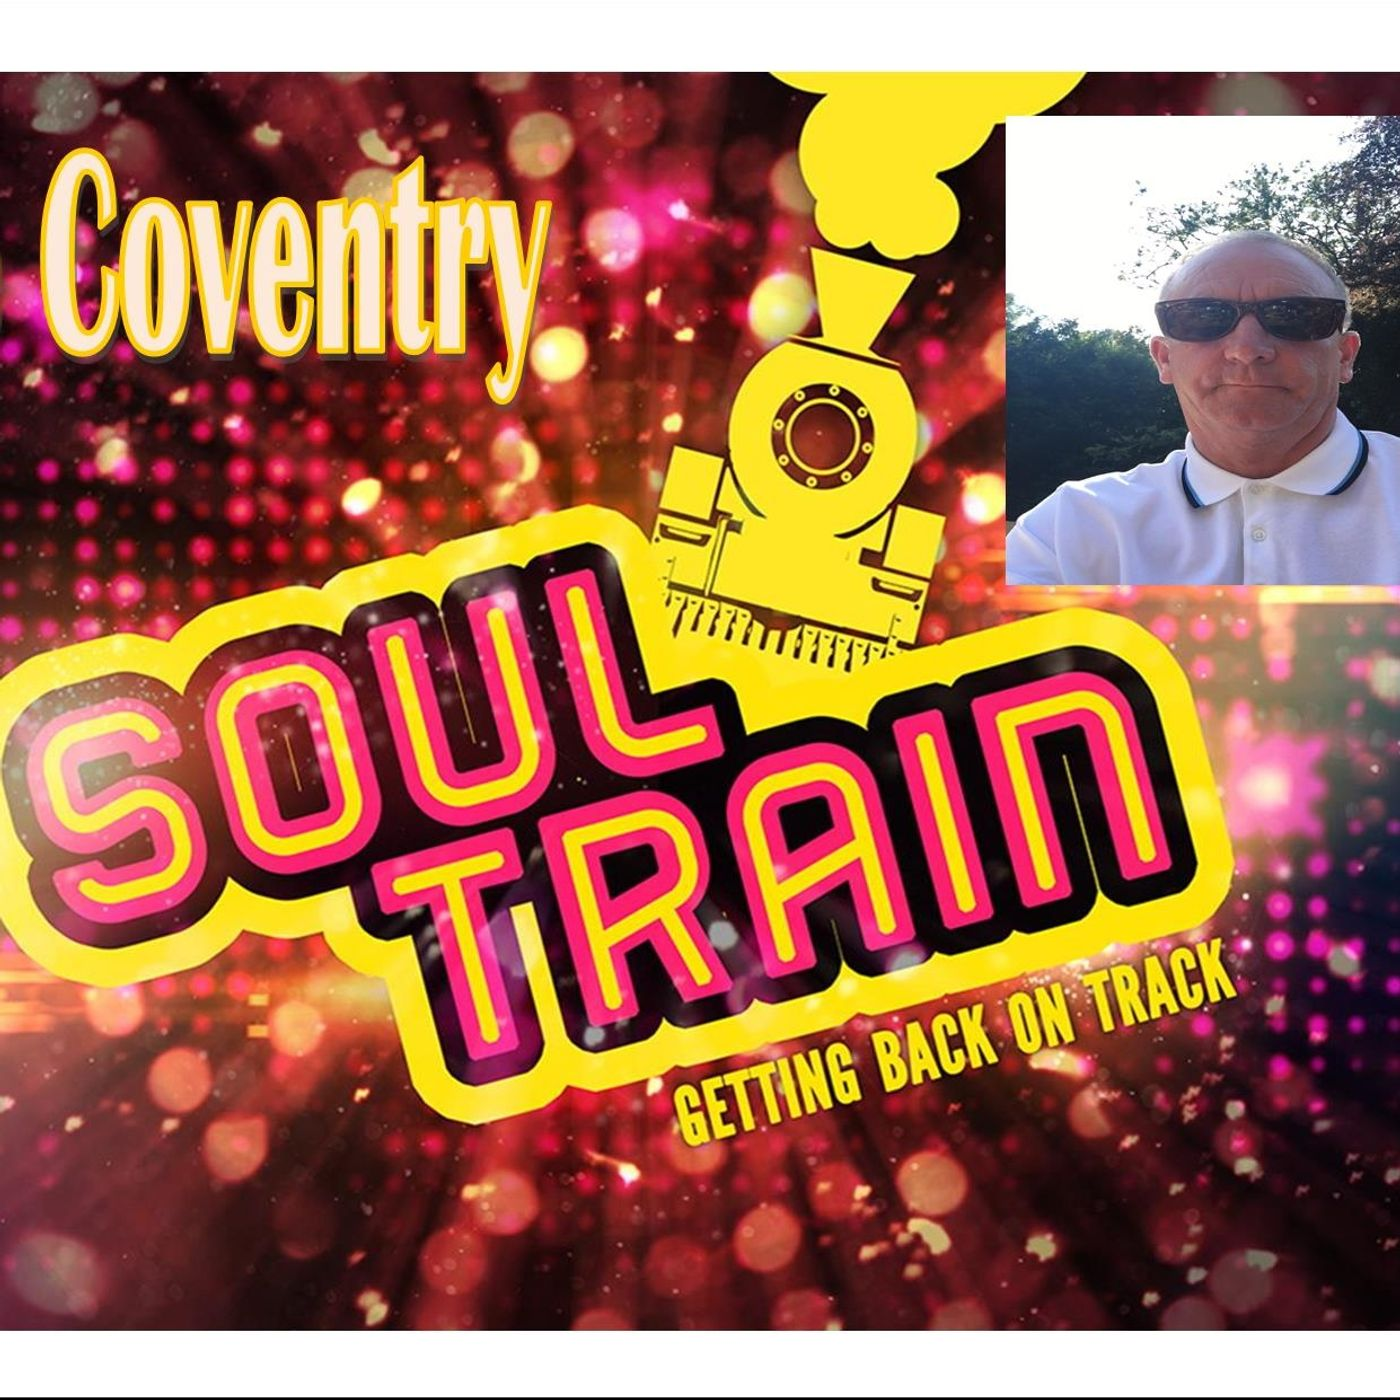 The Coventry soul train